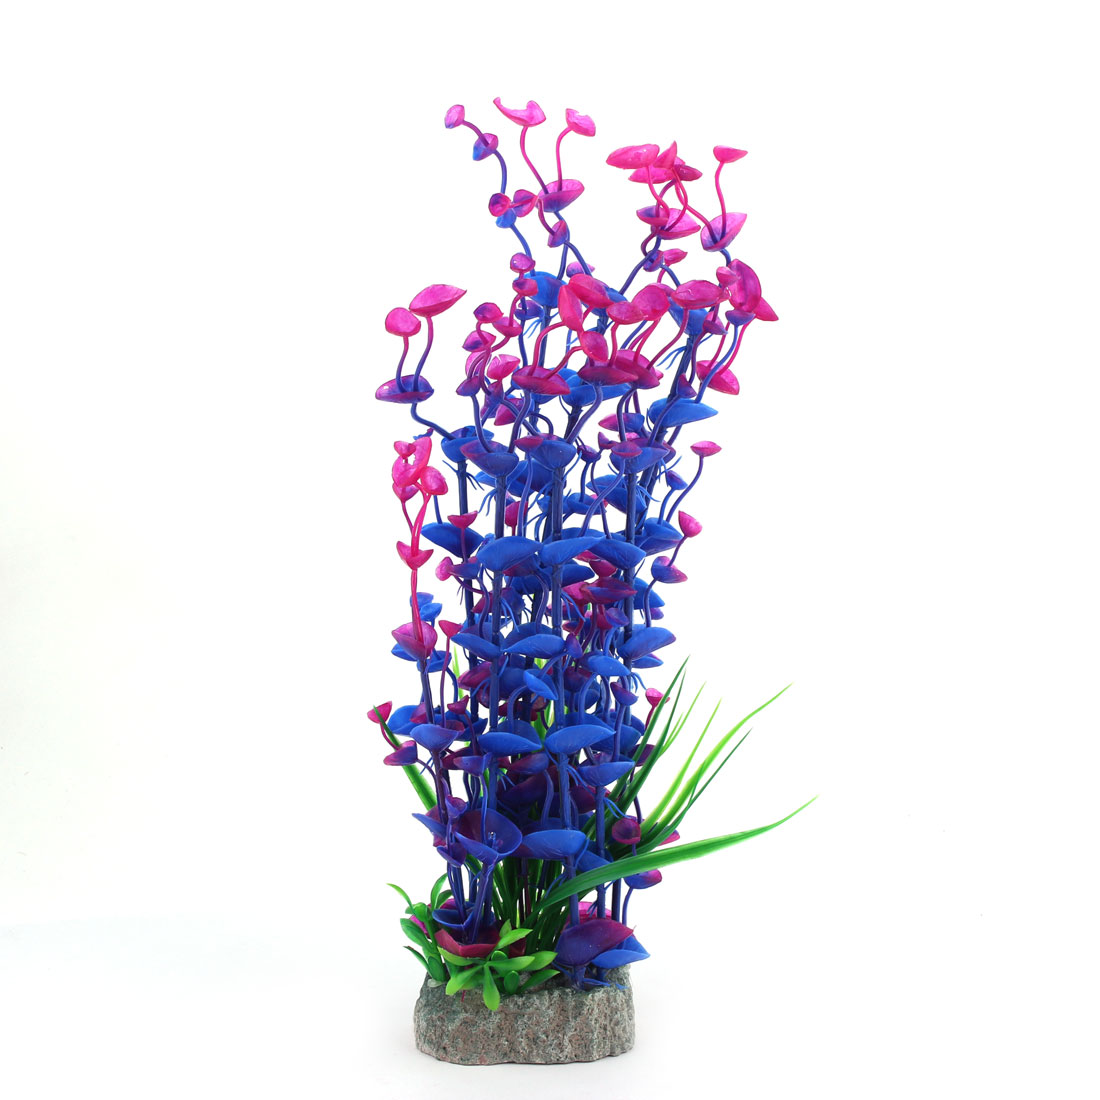 Aquarium Fish Tank Artificial Tropical Vivid Scenery Decoration Water Plant